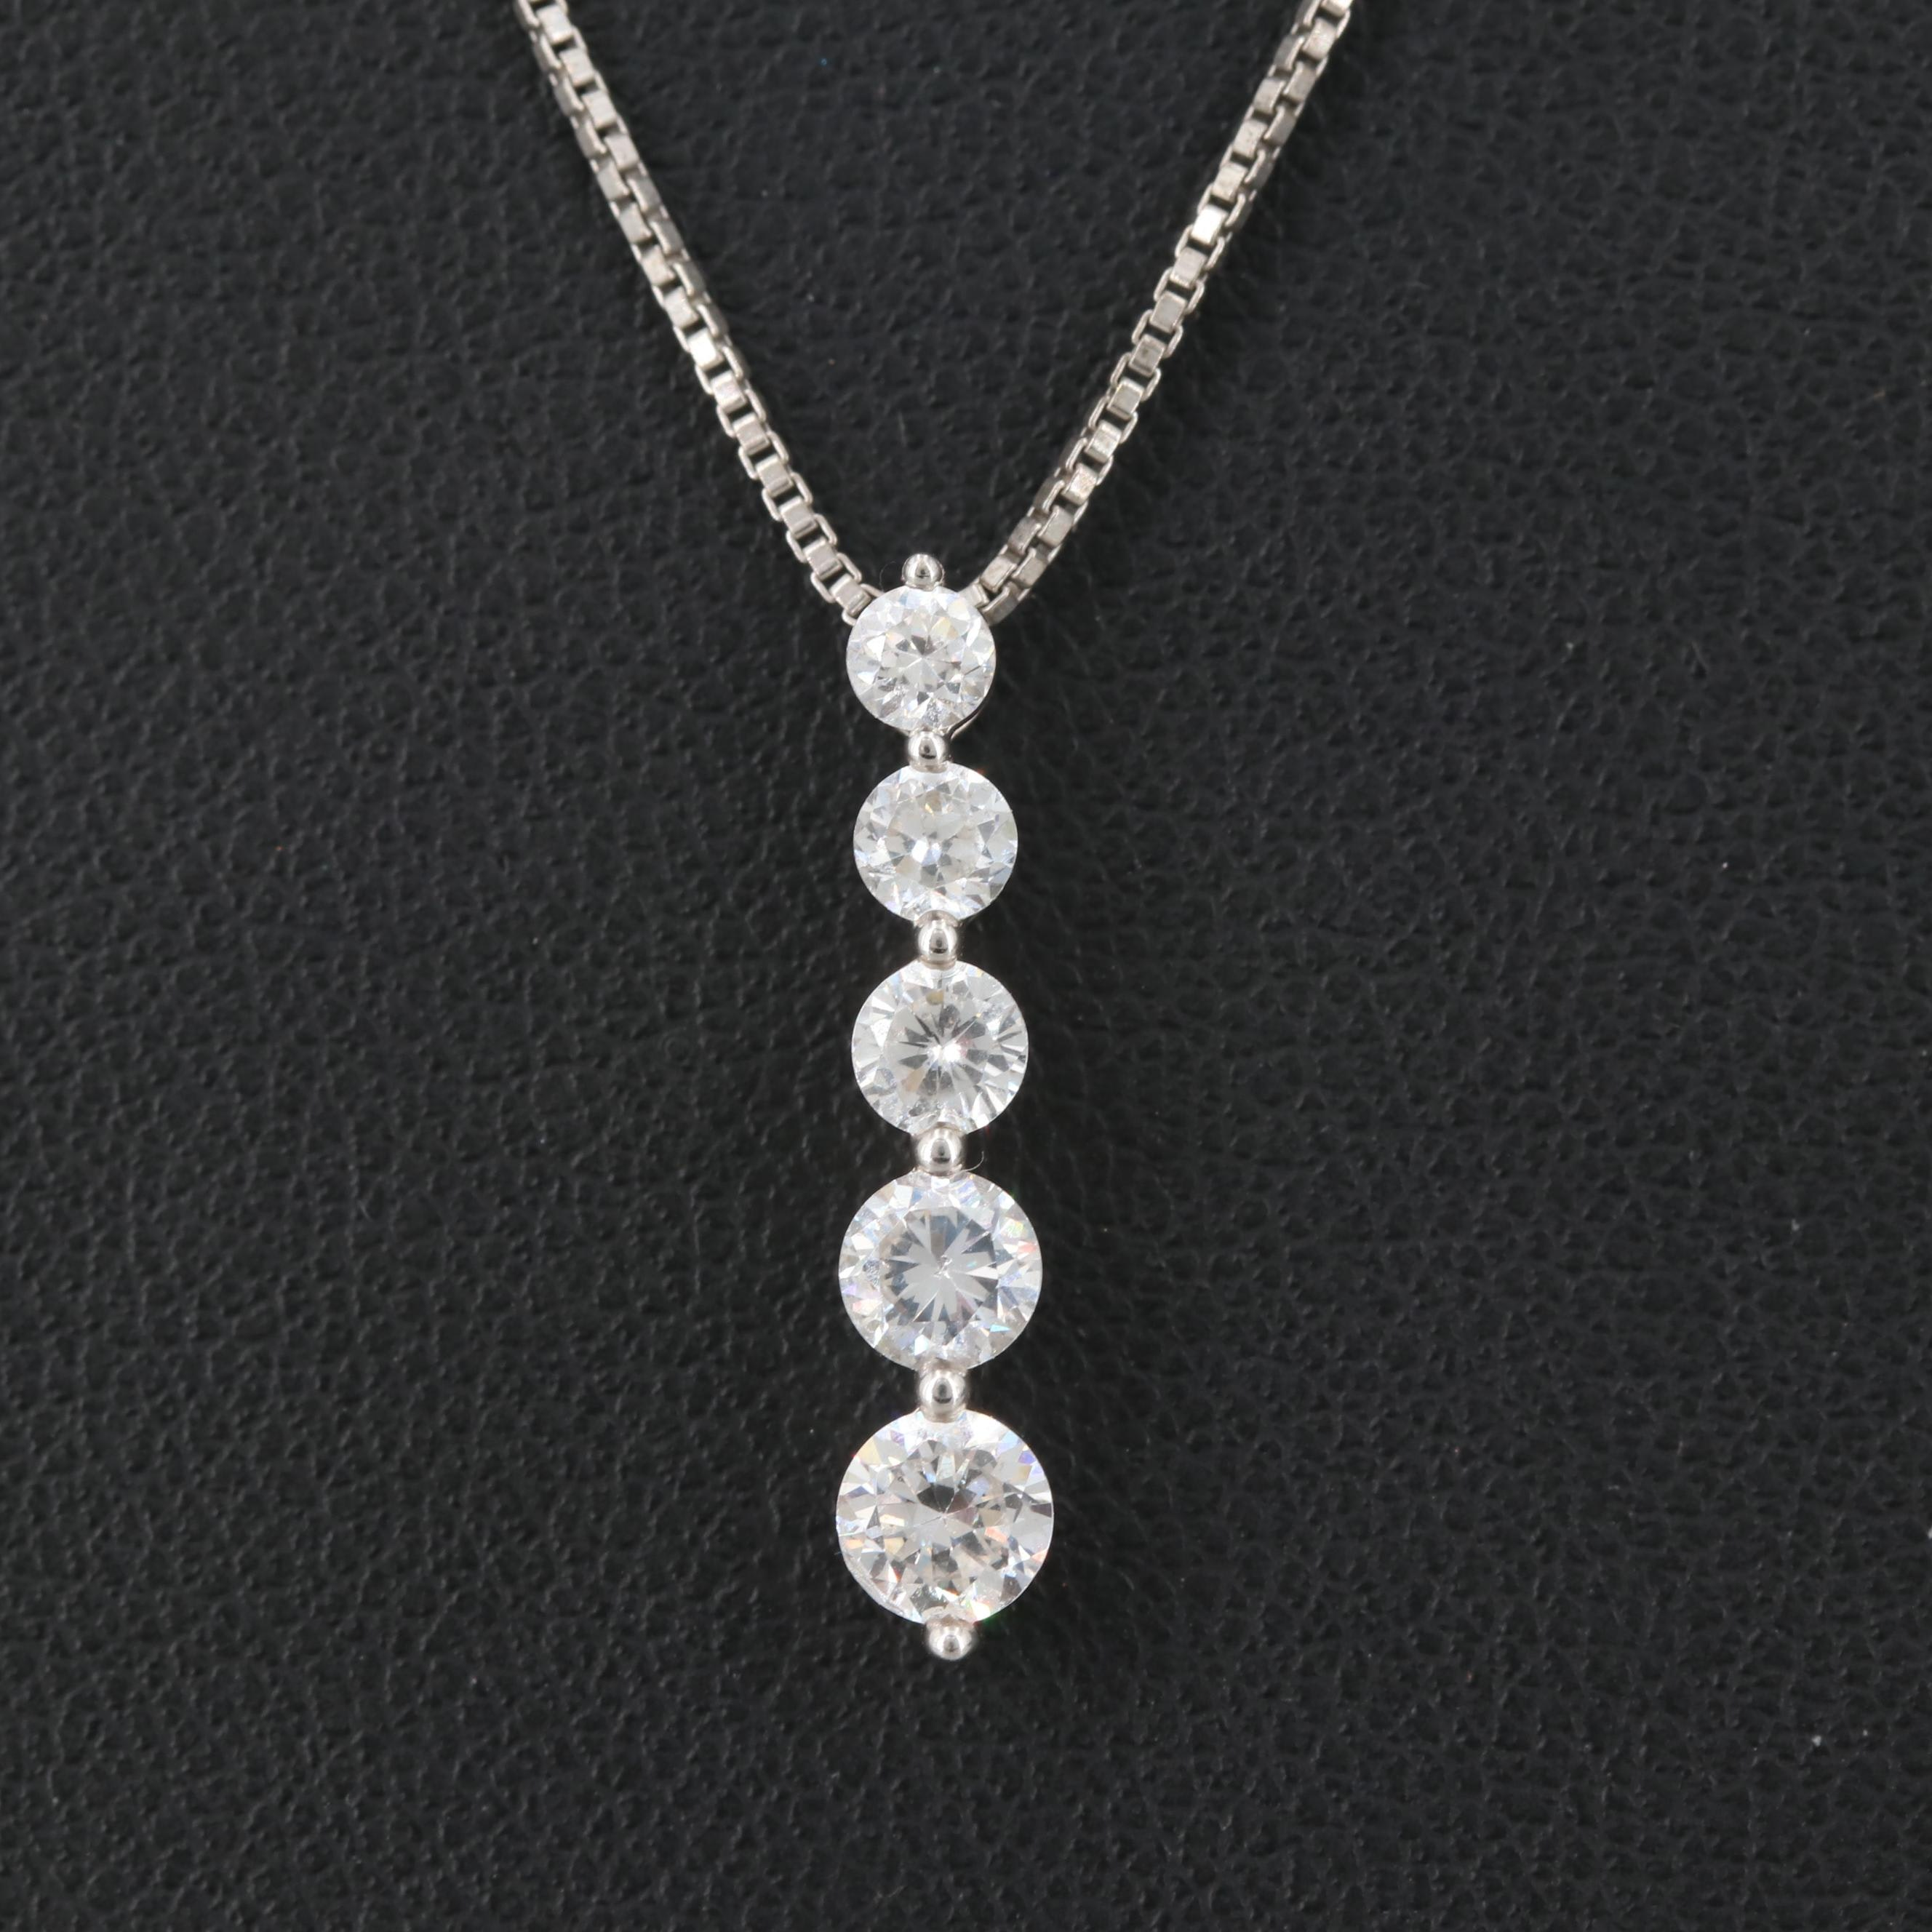 Sterling Silver Cubic Zirconia Drop Pendant Necklace